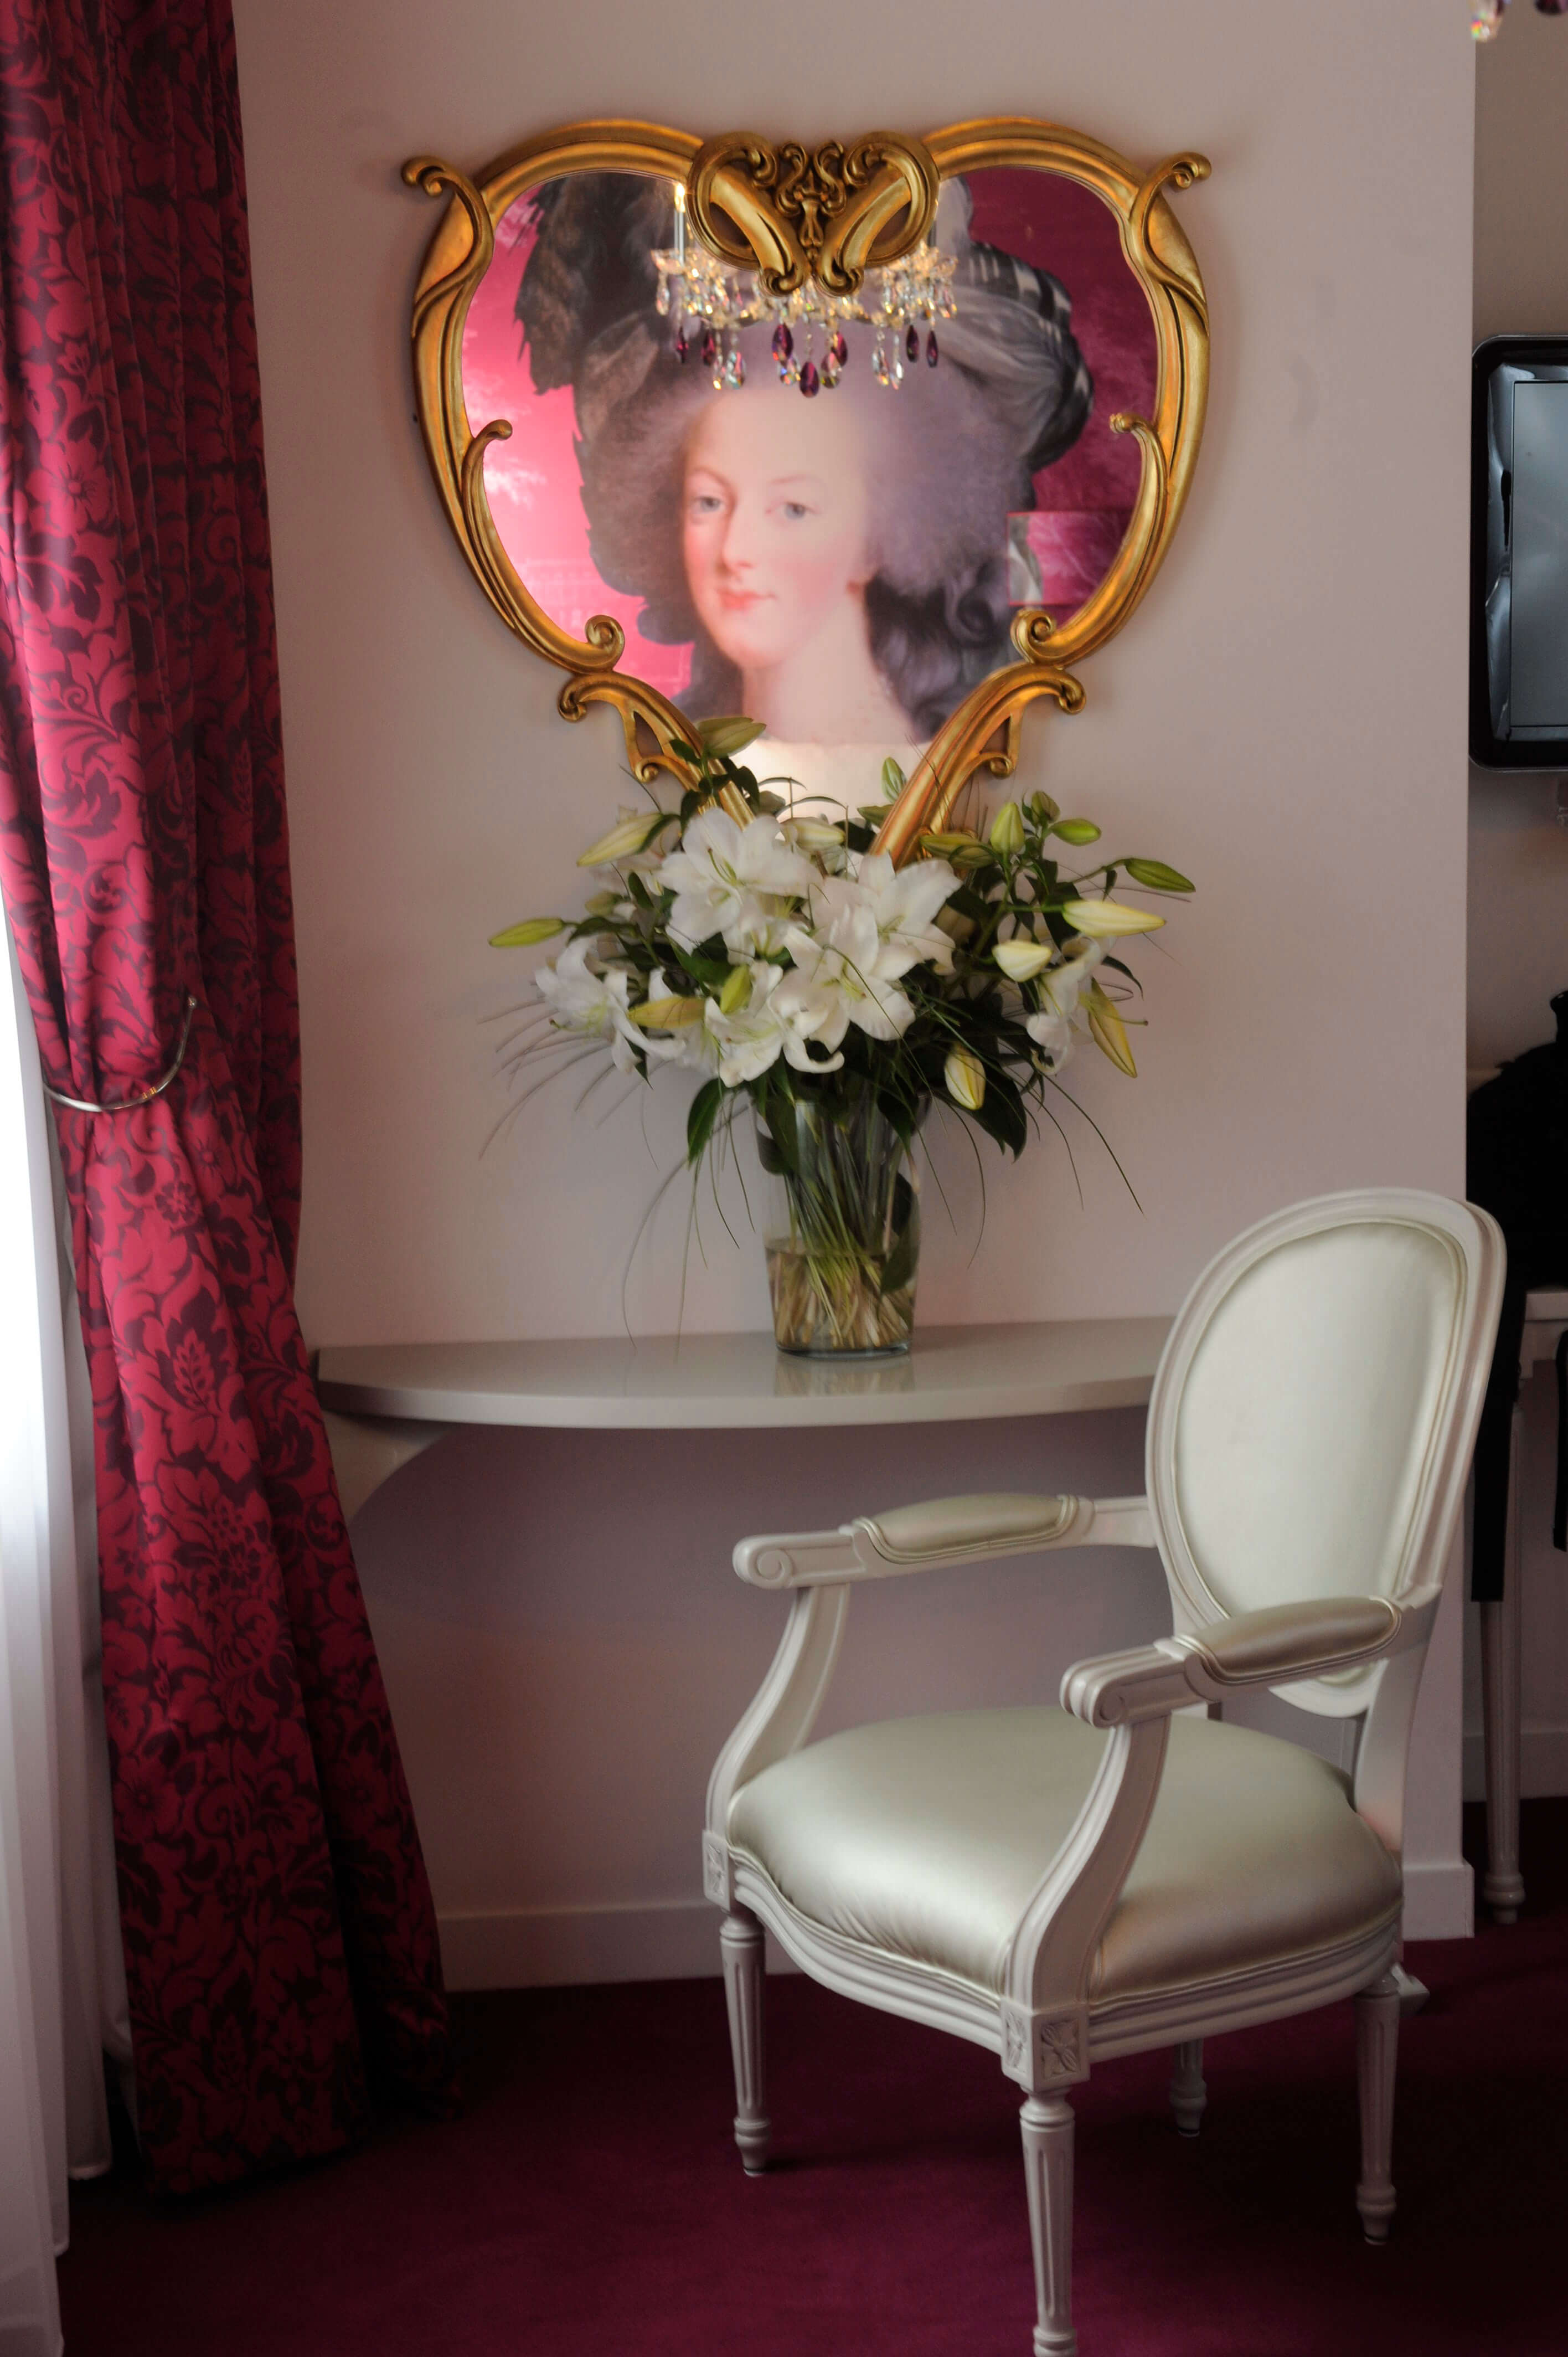 hotel-konfidentiel-chambre-rose-coiffeuse